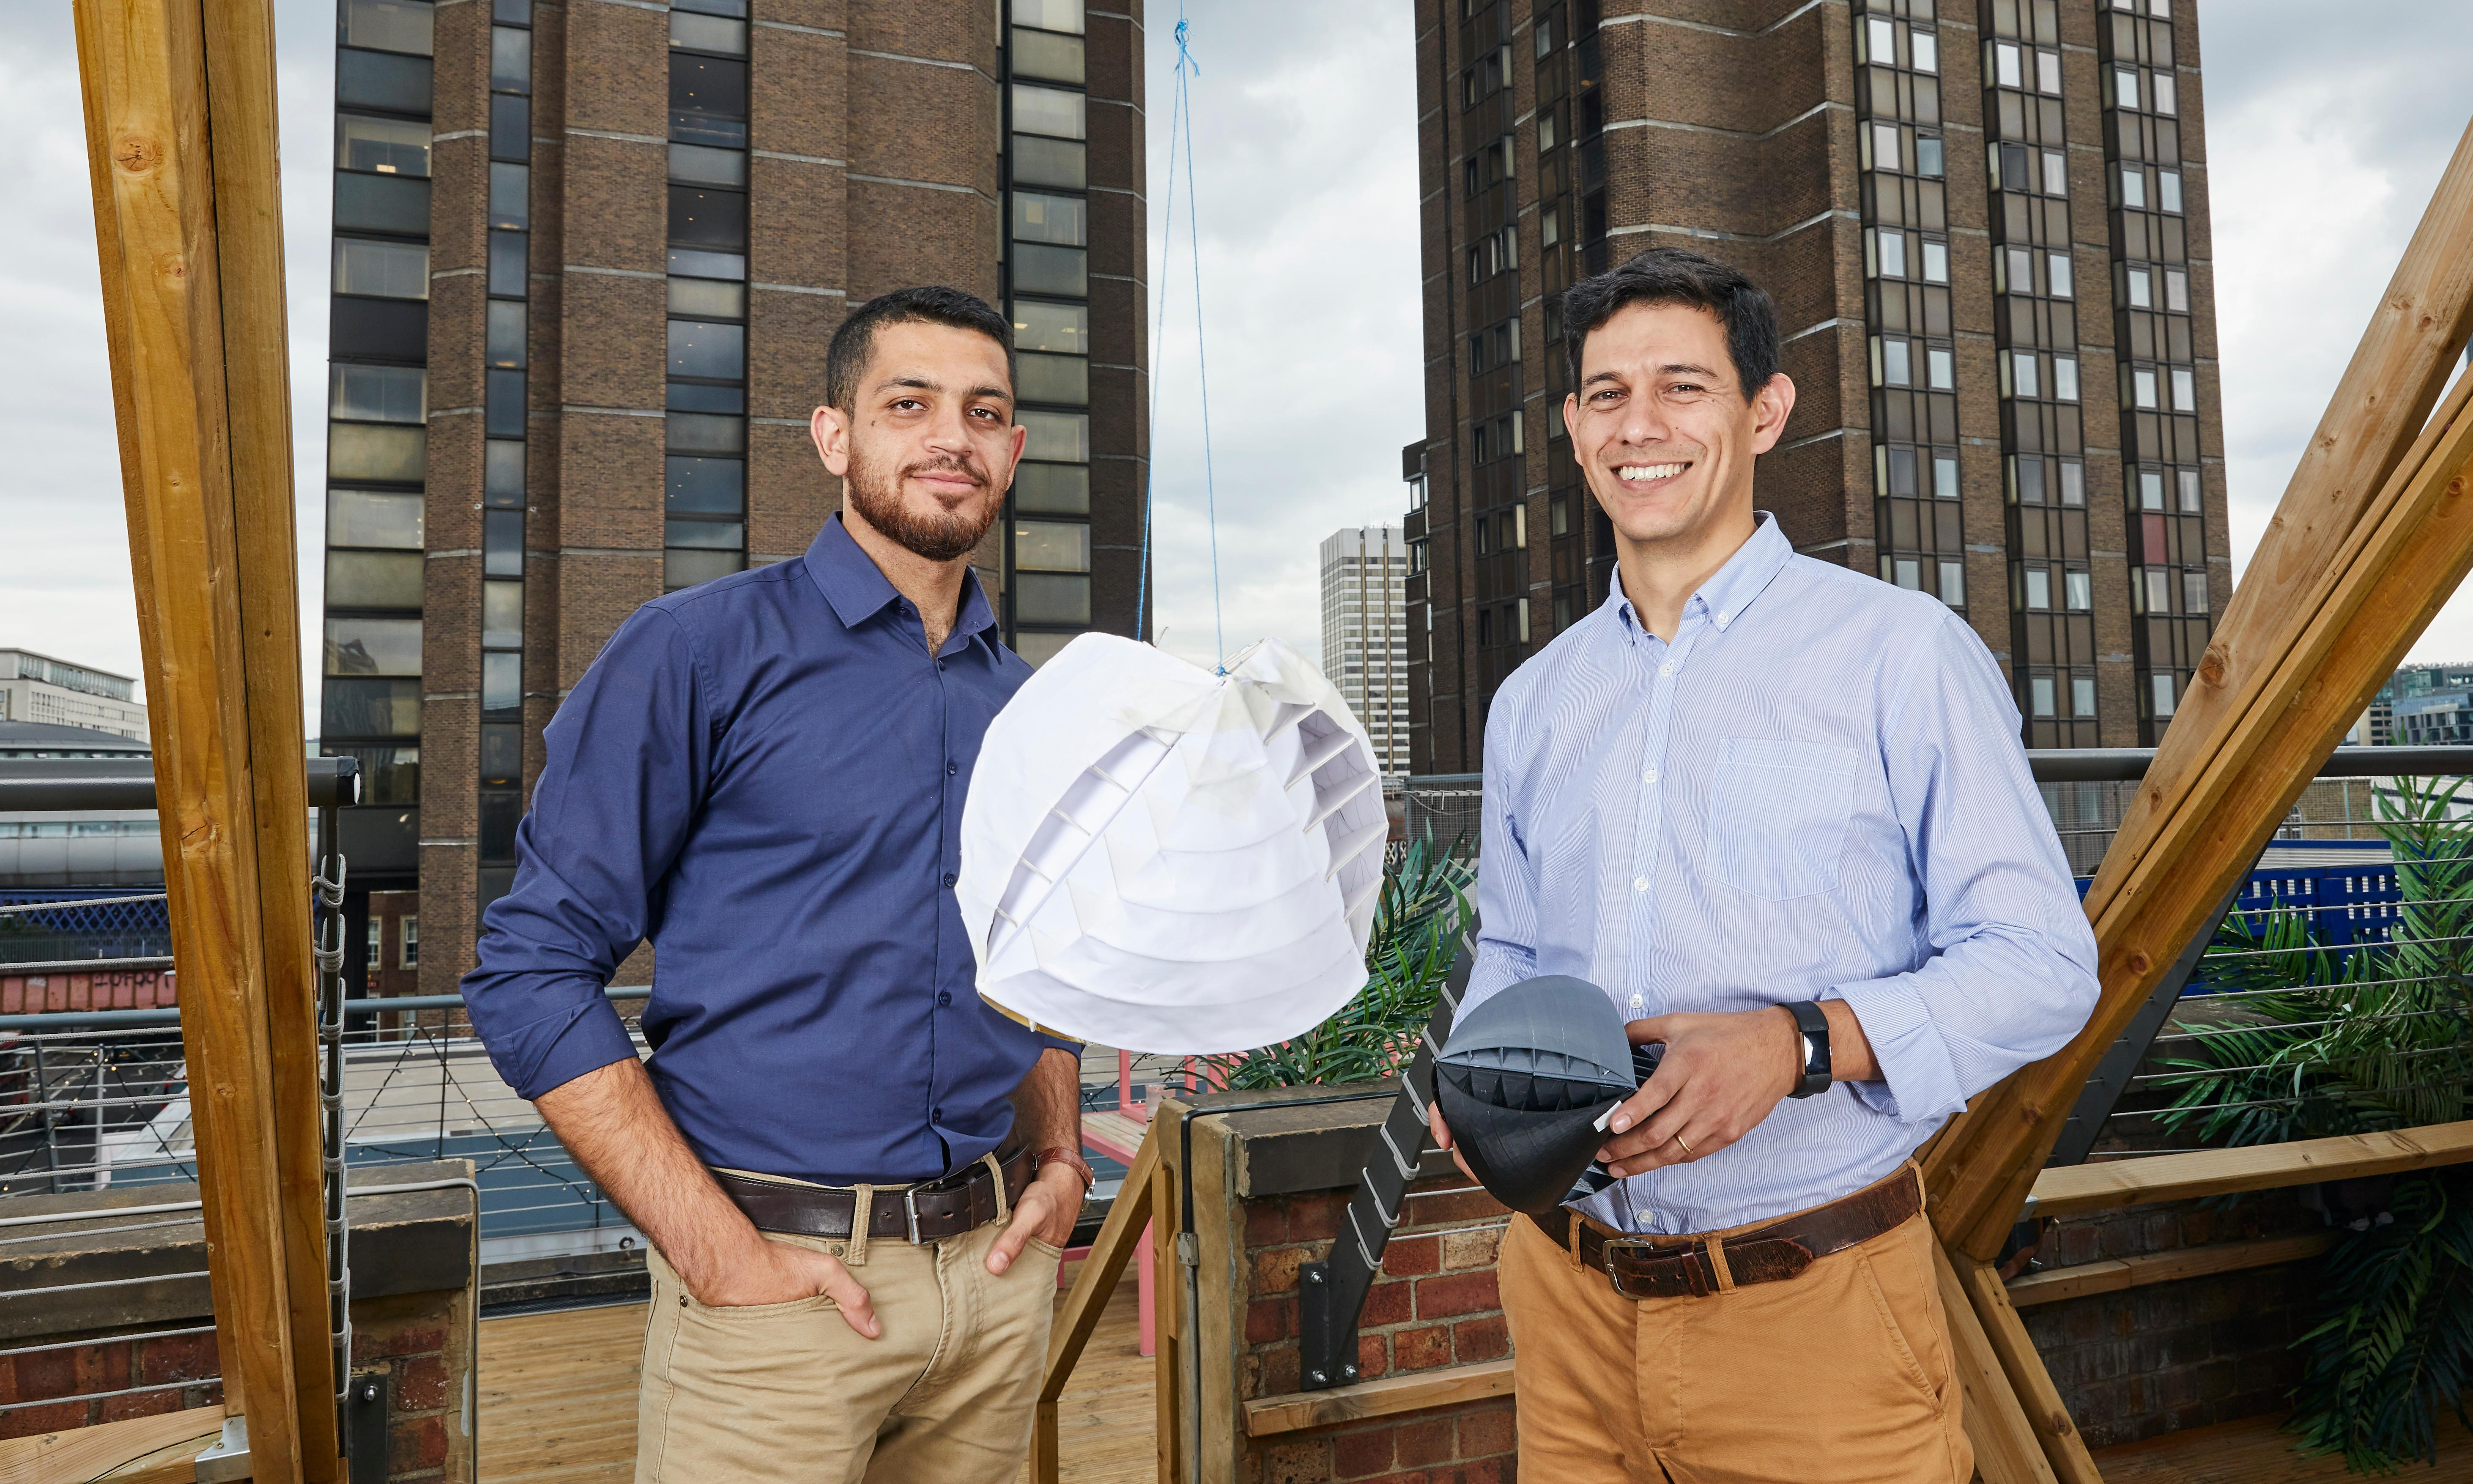 Inventors of spinning wind turbine win James Dyson award